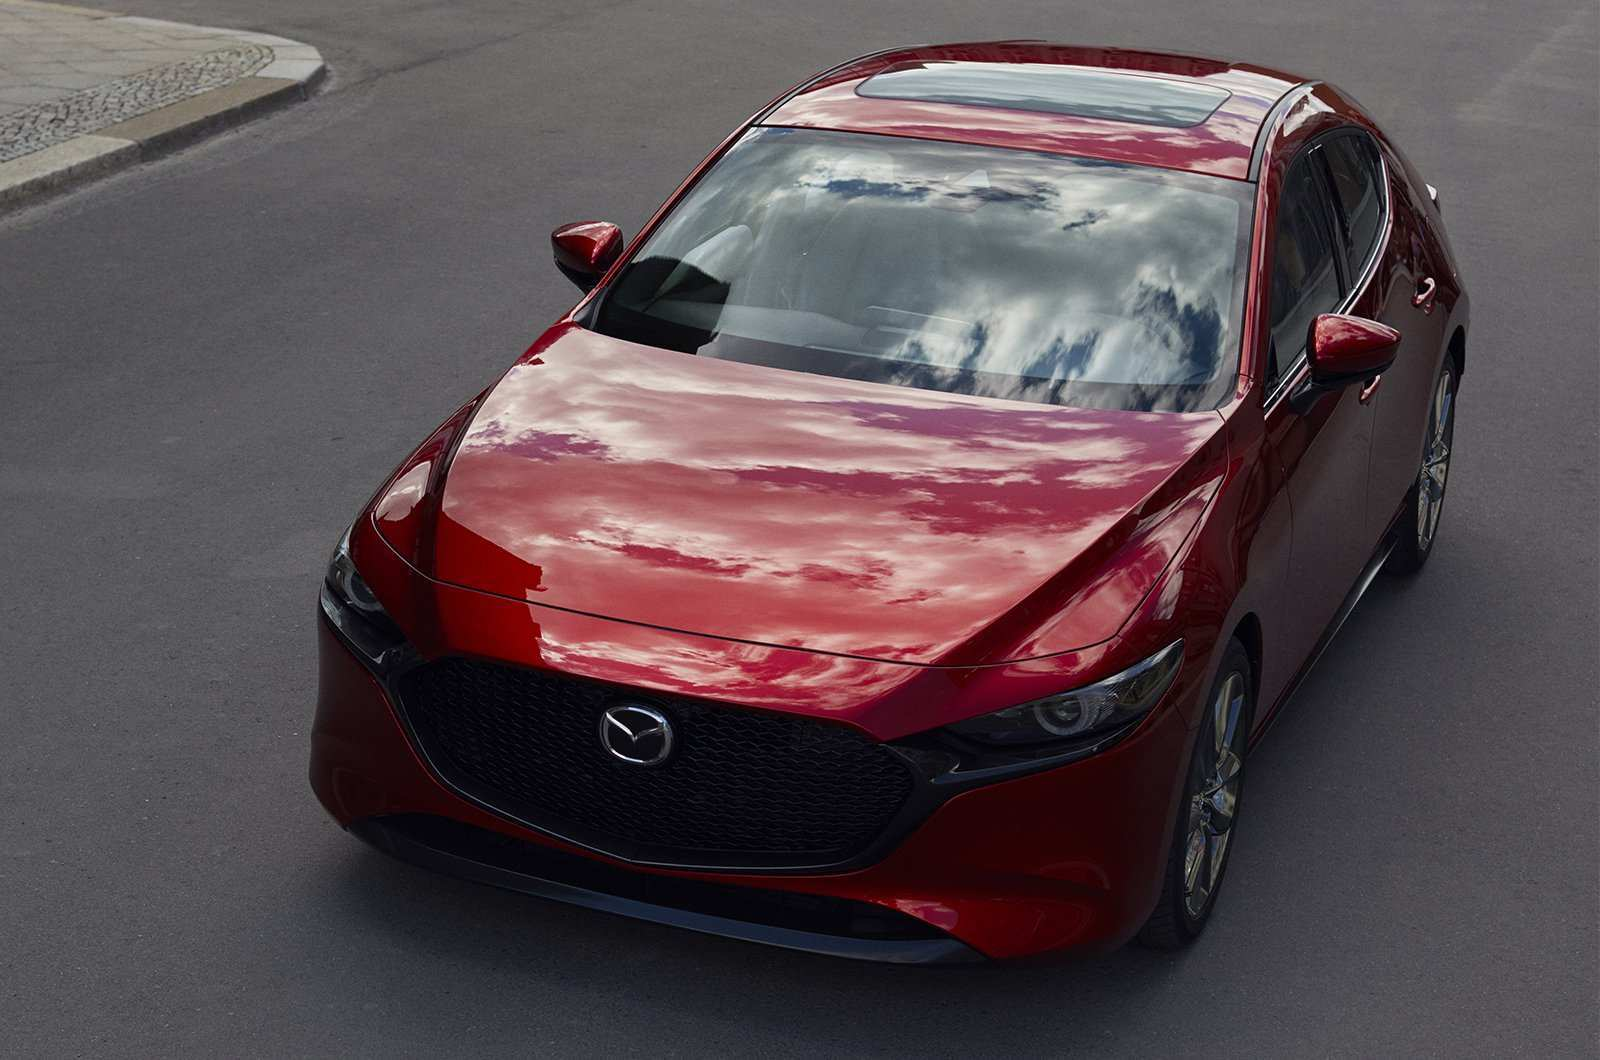 64 All New Mazda 3 2019 Specs Release Date